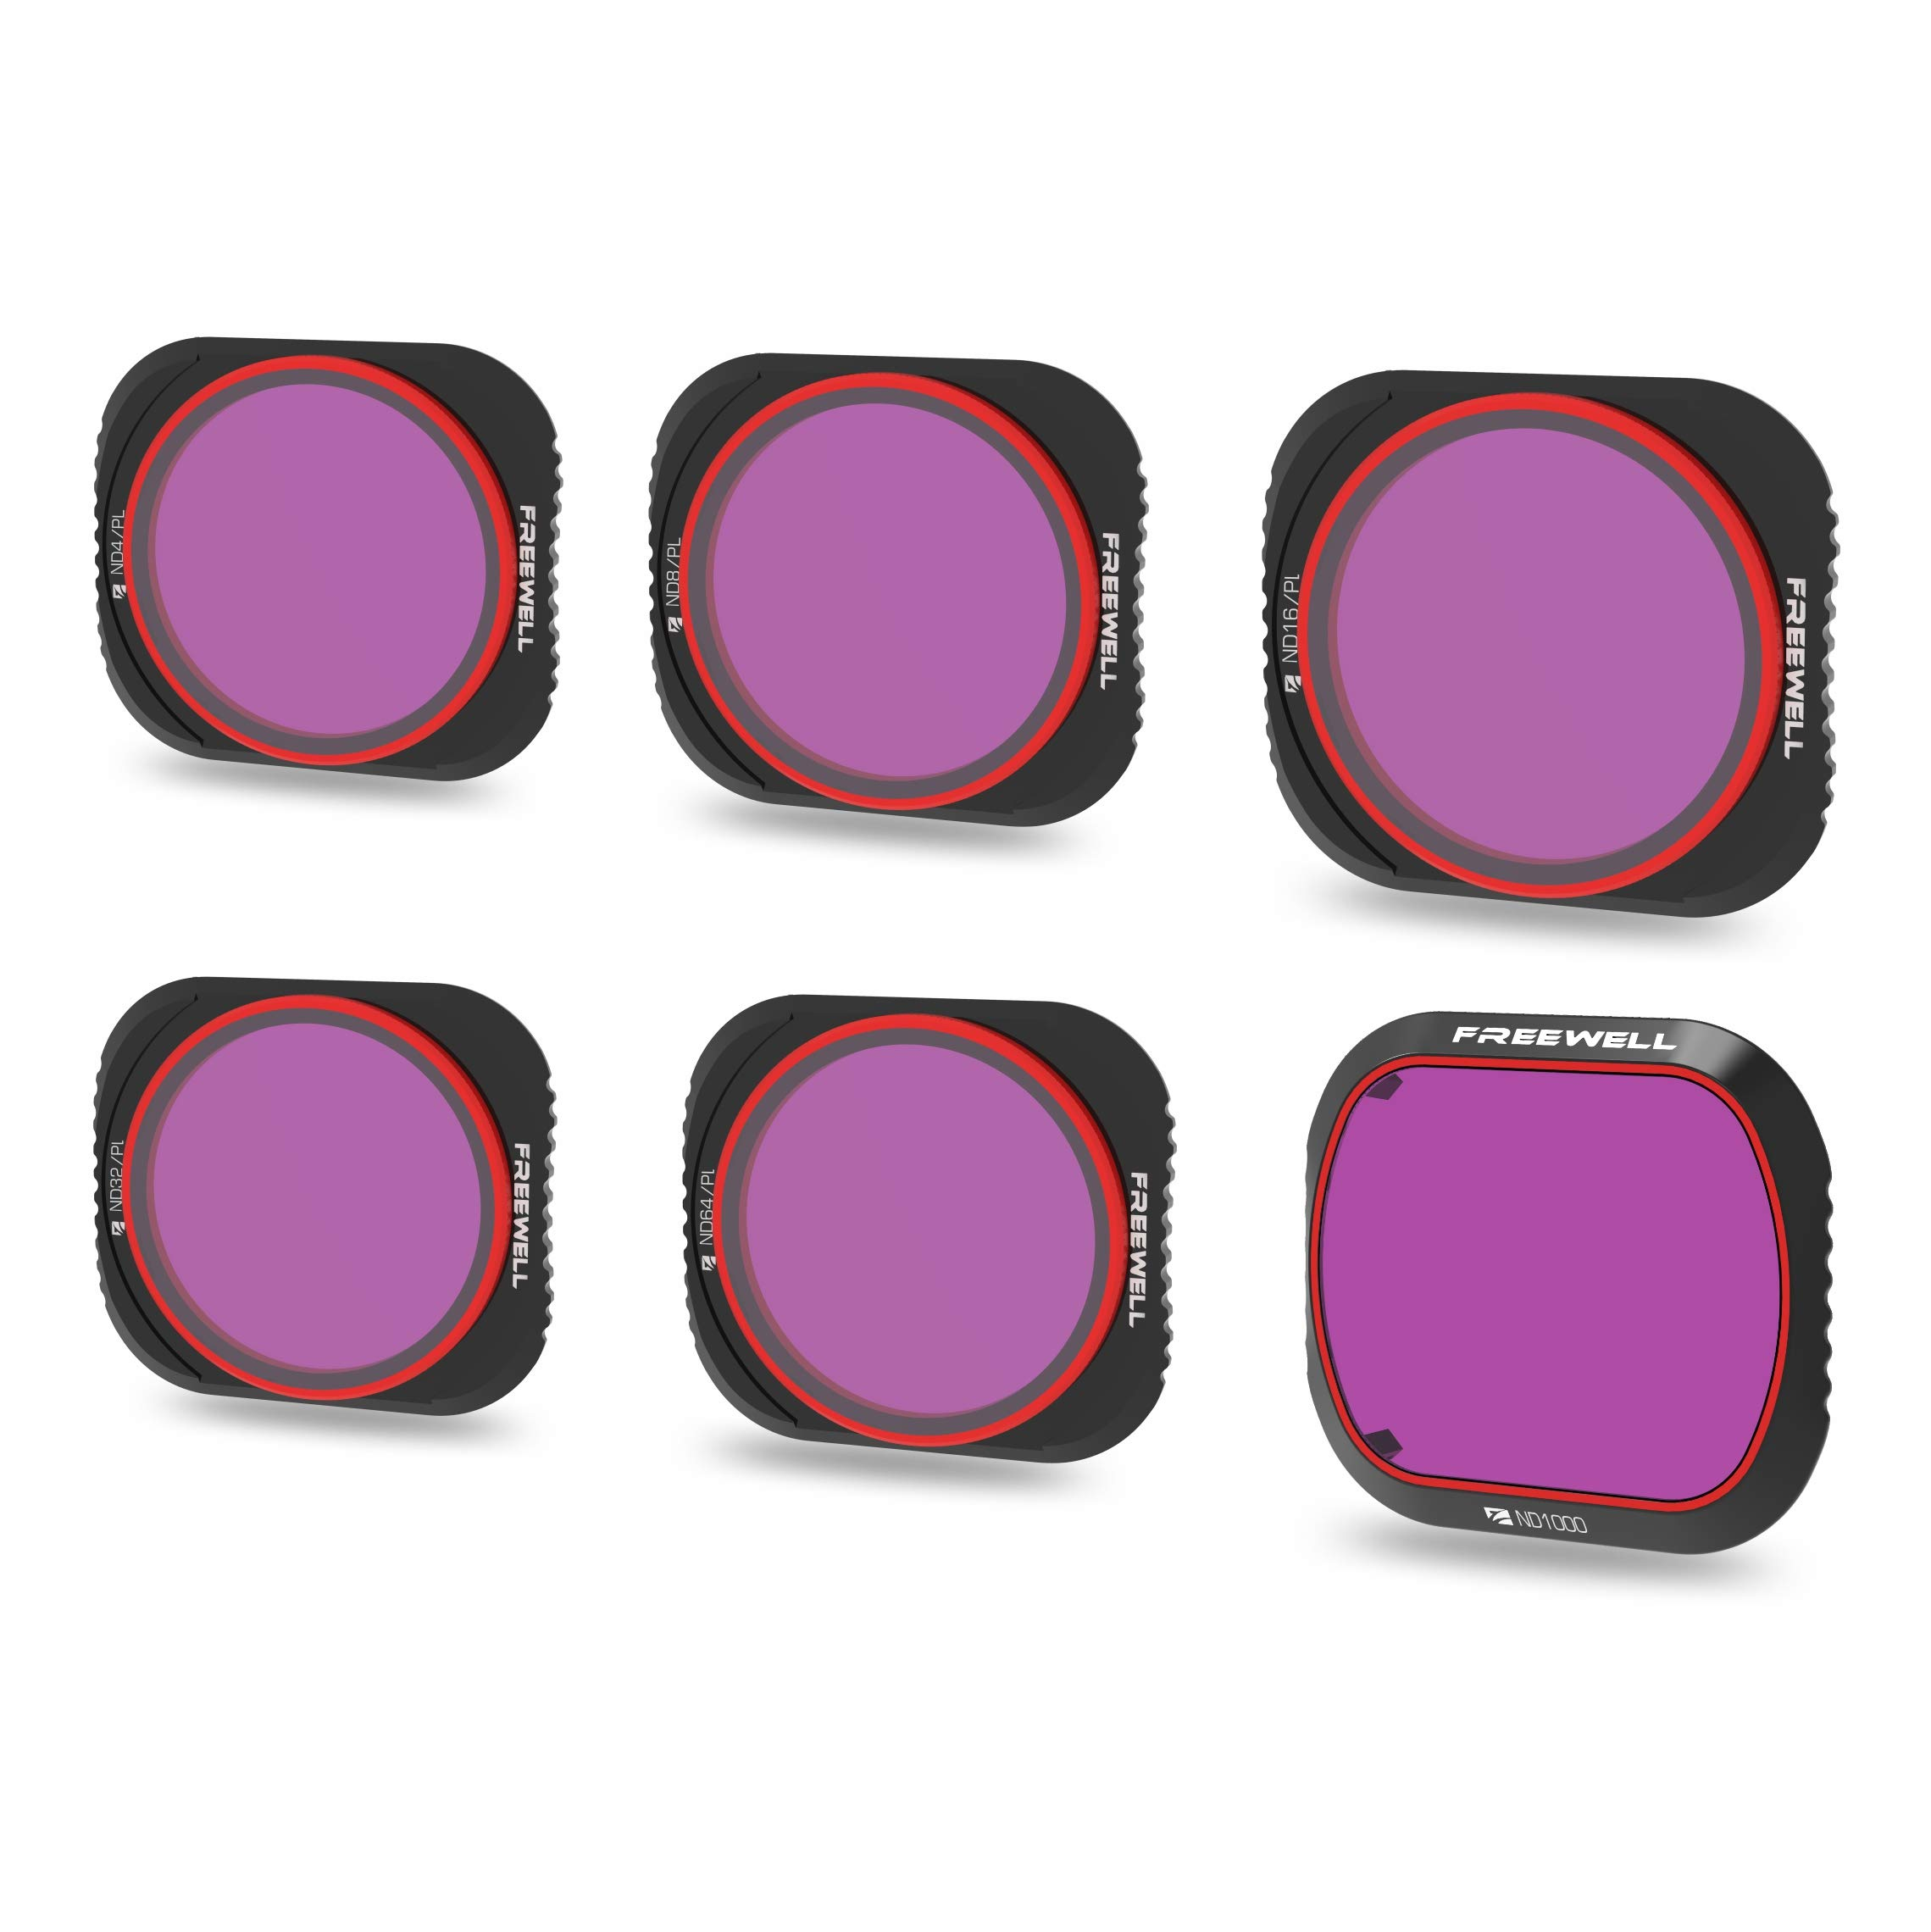 Freewell Limited Edition - 4K Series - 6Pack ND4/PL, ND8/PL, ND16/PL, ND32/PL, ND64/PL,ND1000 Camera Lens Filters Compatible with DJI Mavic 2 Pro Drone by Freewell